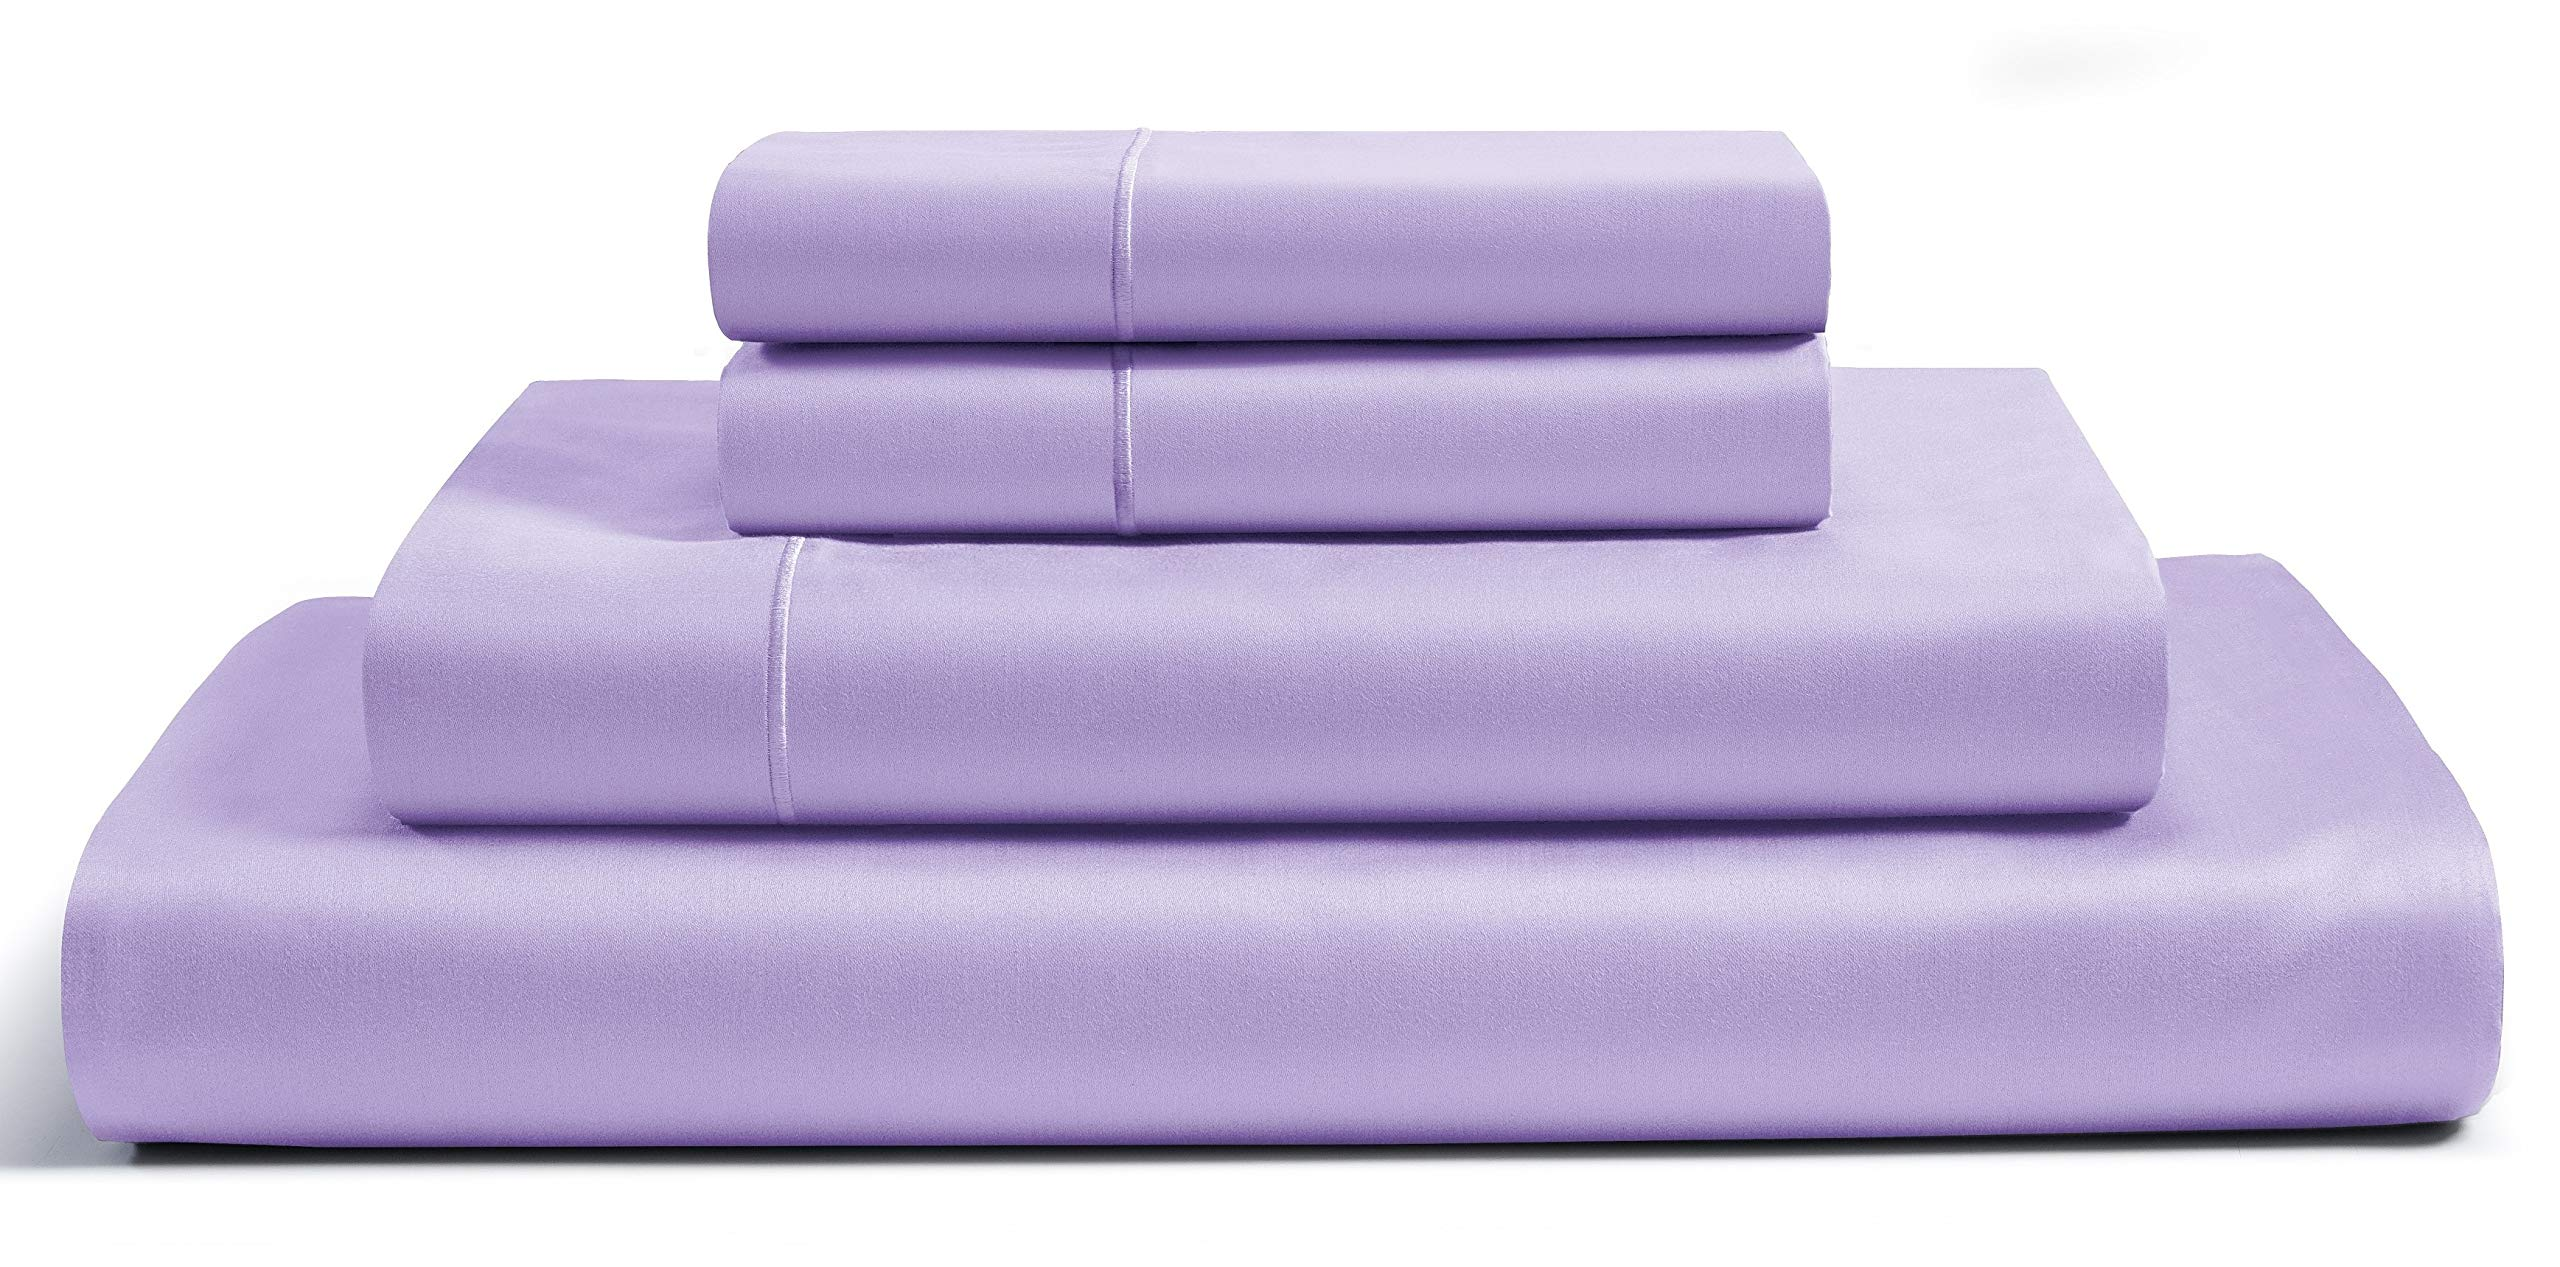 800-Thread-Count Premium 100% Egyptian Cotton Queen Sheets Set - Lilac Long-staple Cotton Queen Bed Sheet, Fits Mattress Upto 16'' Deep Pocket,Breathable,Soft Sateen Weave 4-Piece Sheets & Pillowcases by CHATEAU HOME COLLECTION